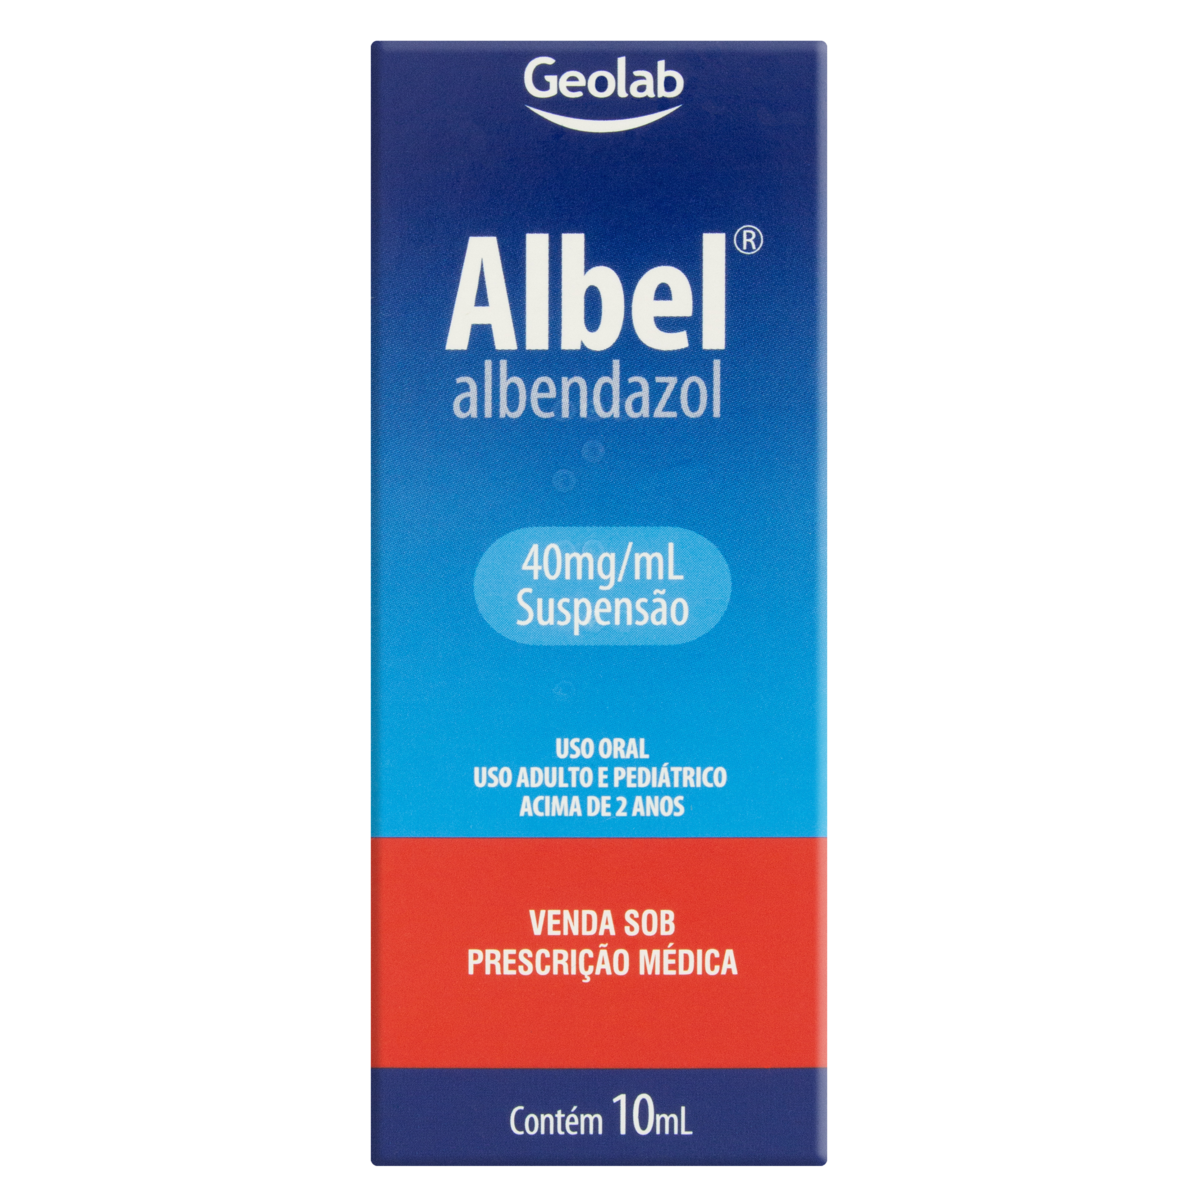 7899095201972 - ALBEL 40MG/ML GEOLAB CAIXA 10ML